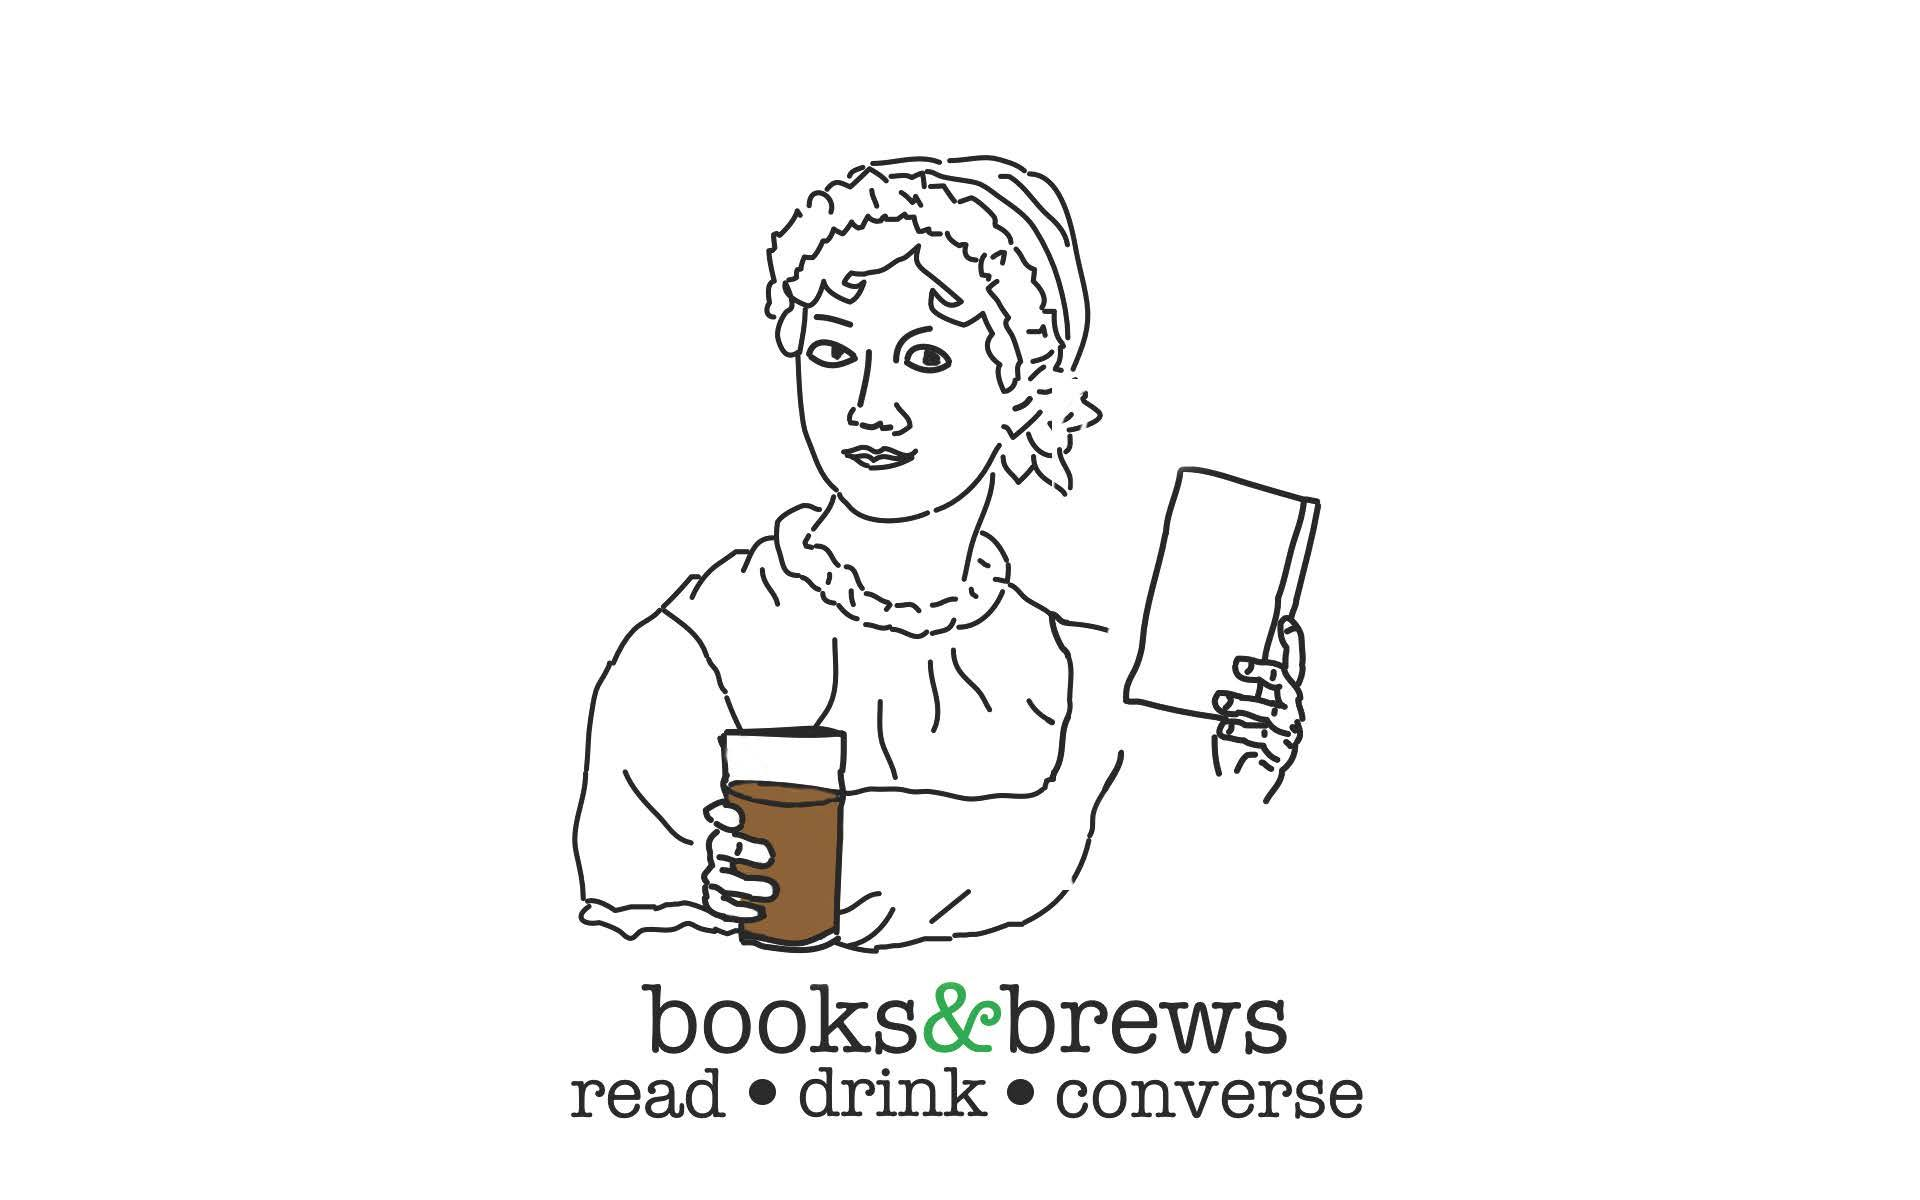 corporate logo for books and brews coffee company. dipicts an illustration of a woman holding a glass of coffee and a book. text reads boos and brews. read. drink. converse.